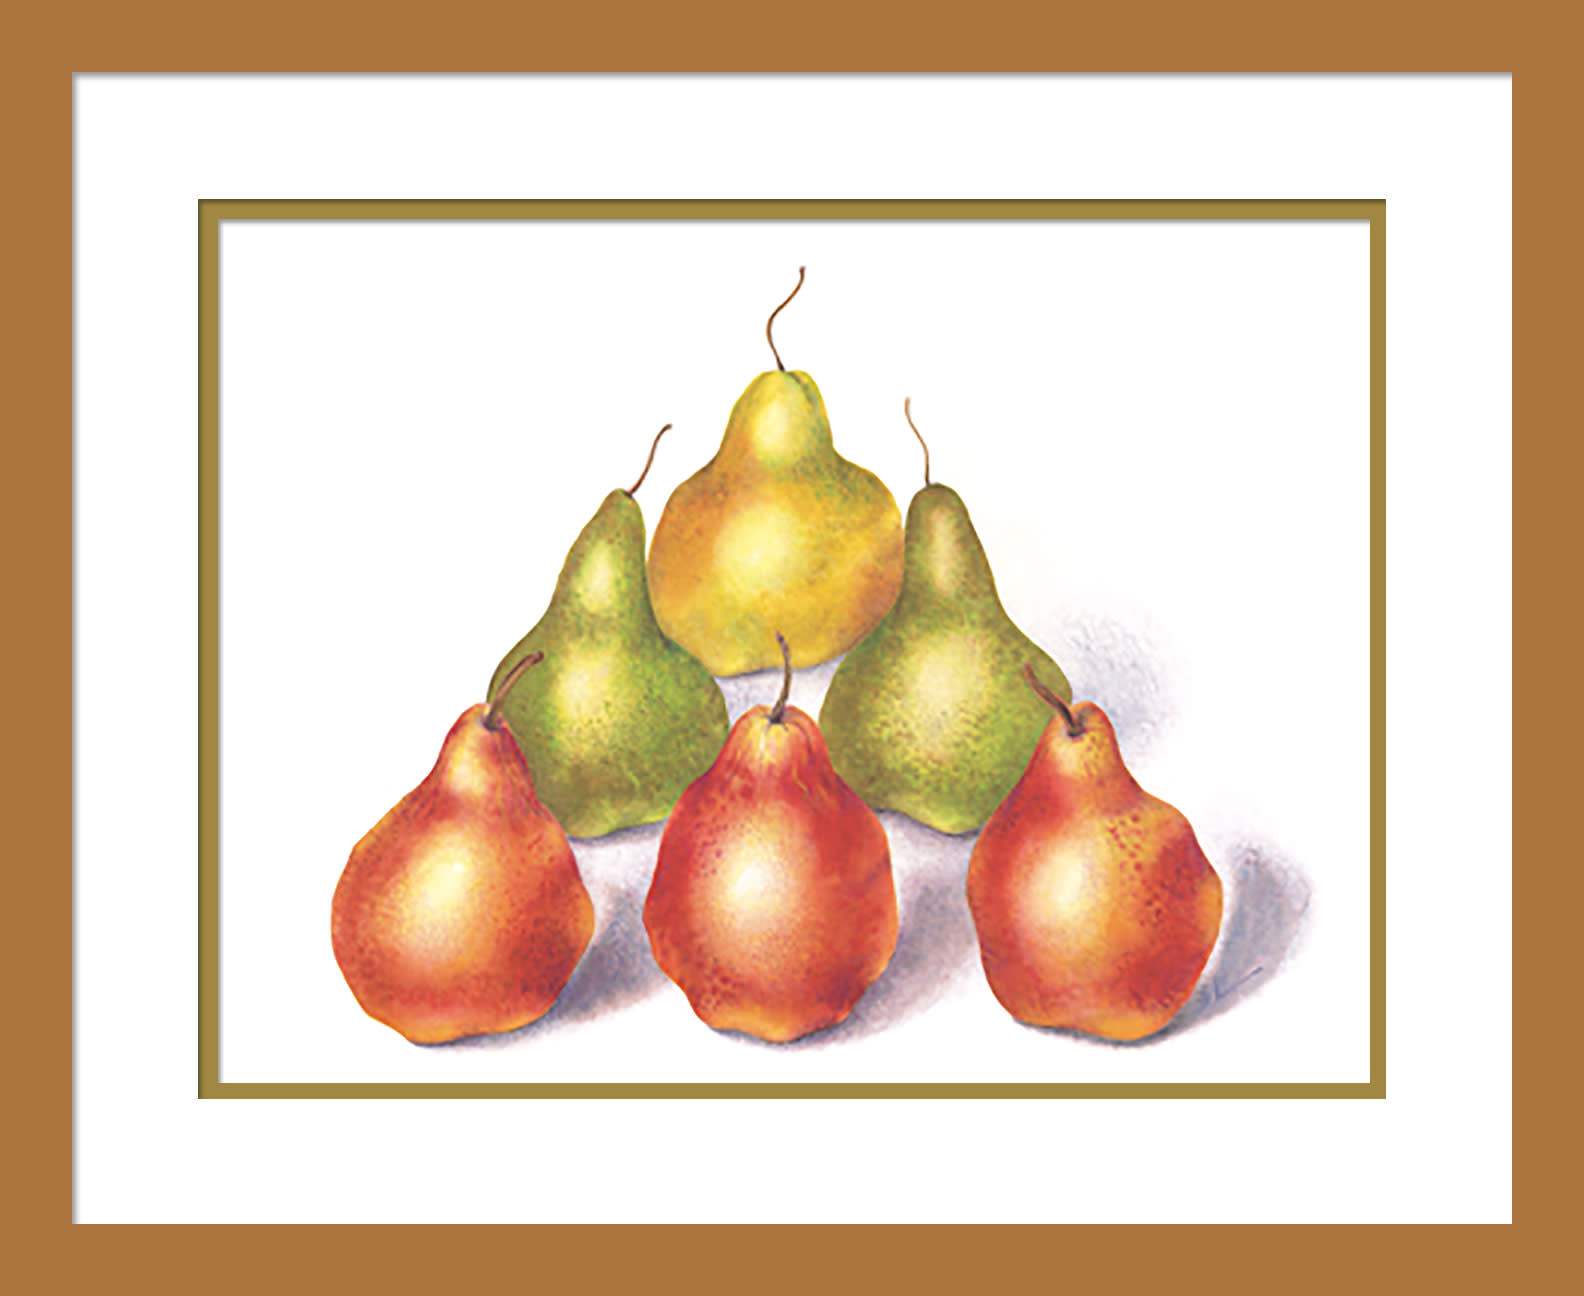 030504 pyramid pears  2 12x16 matted in 16x20 frame y2mdjc